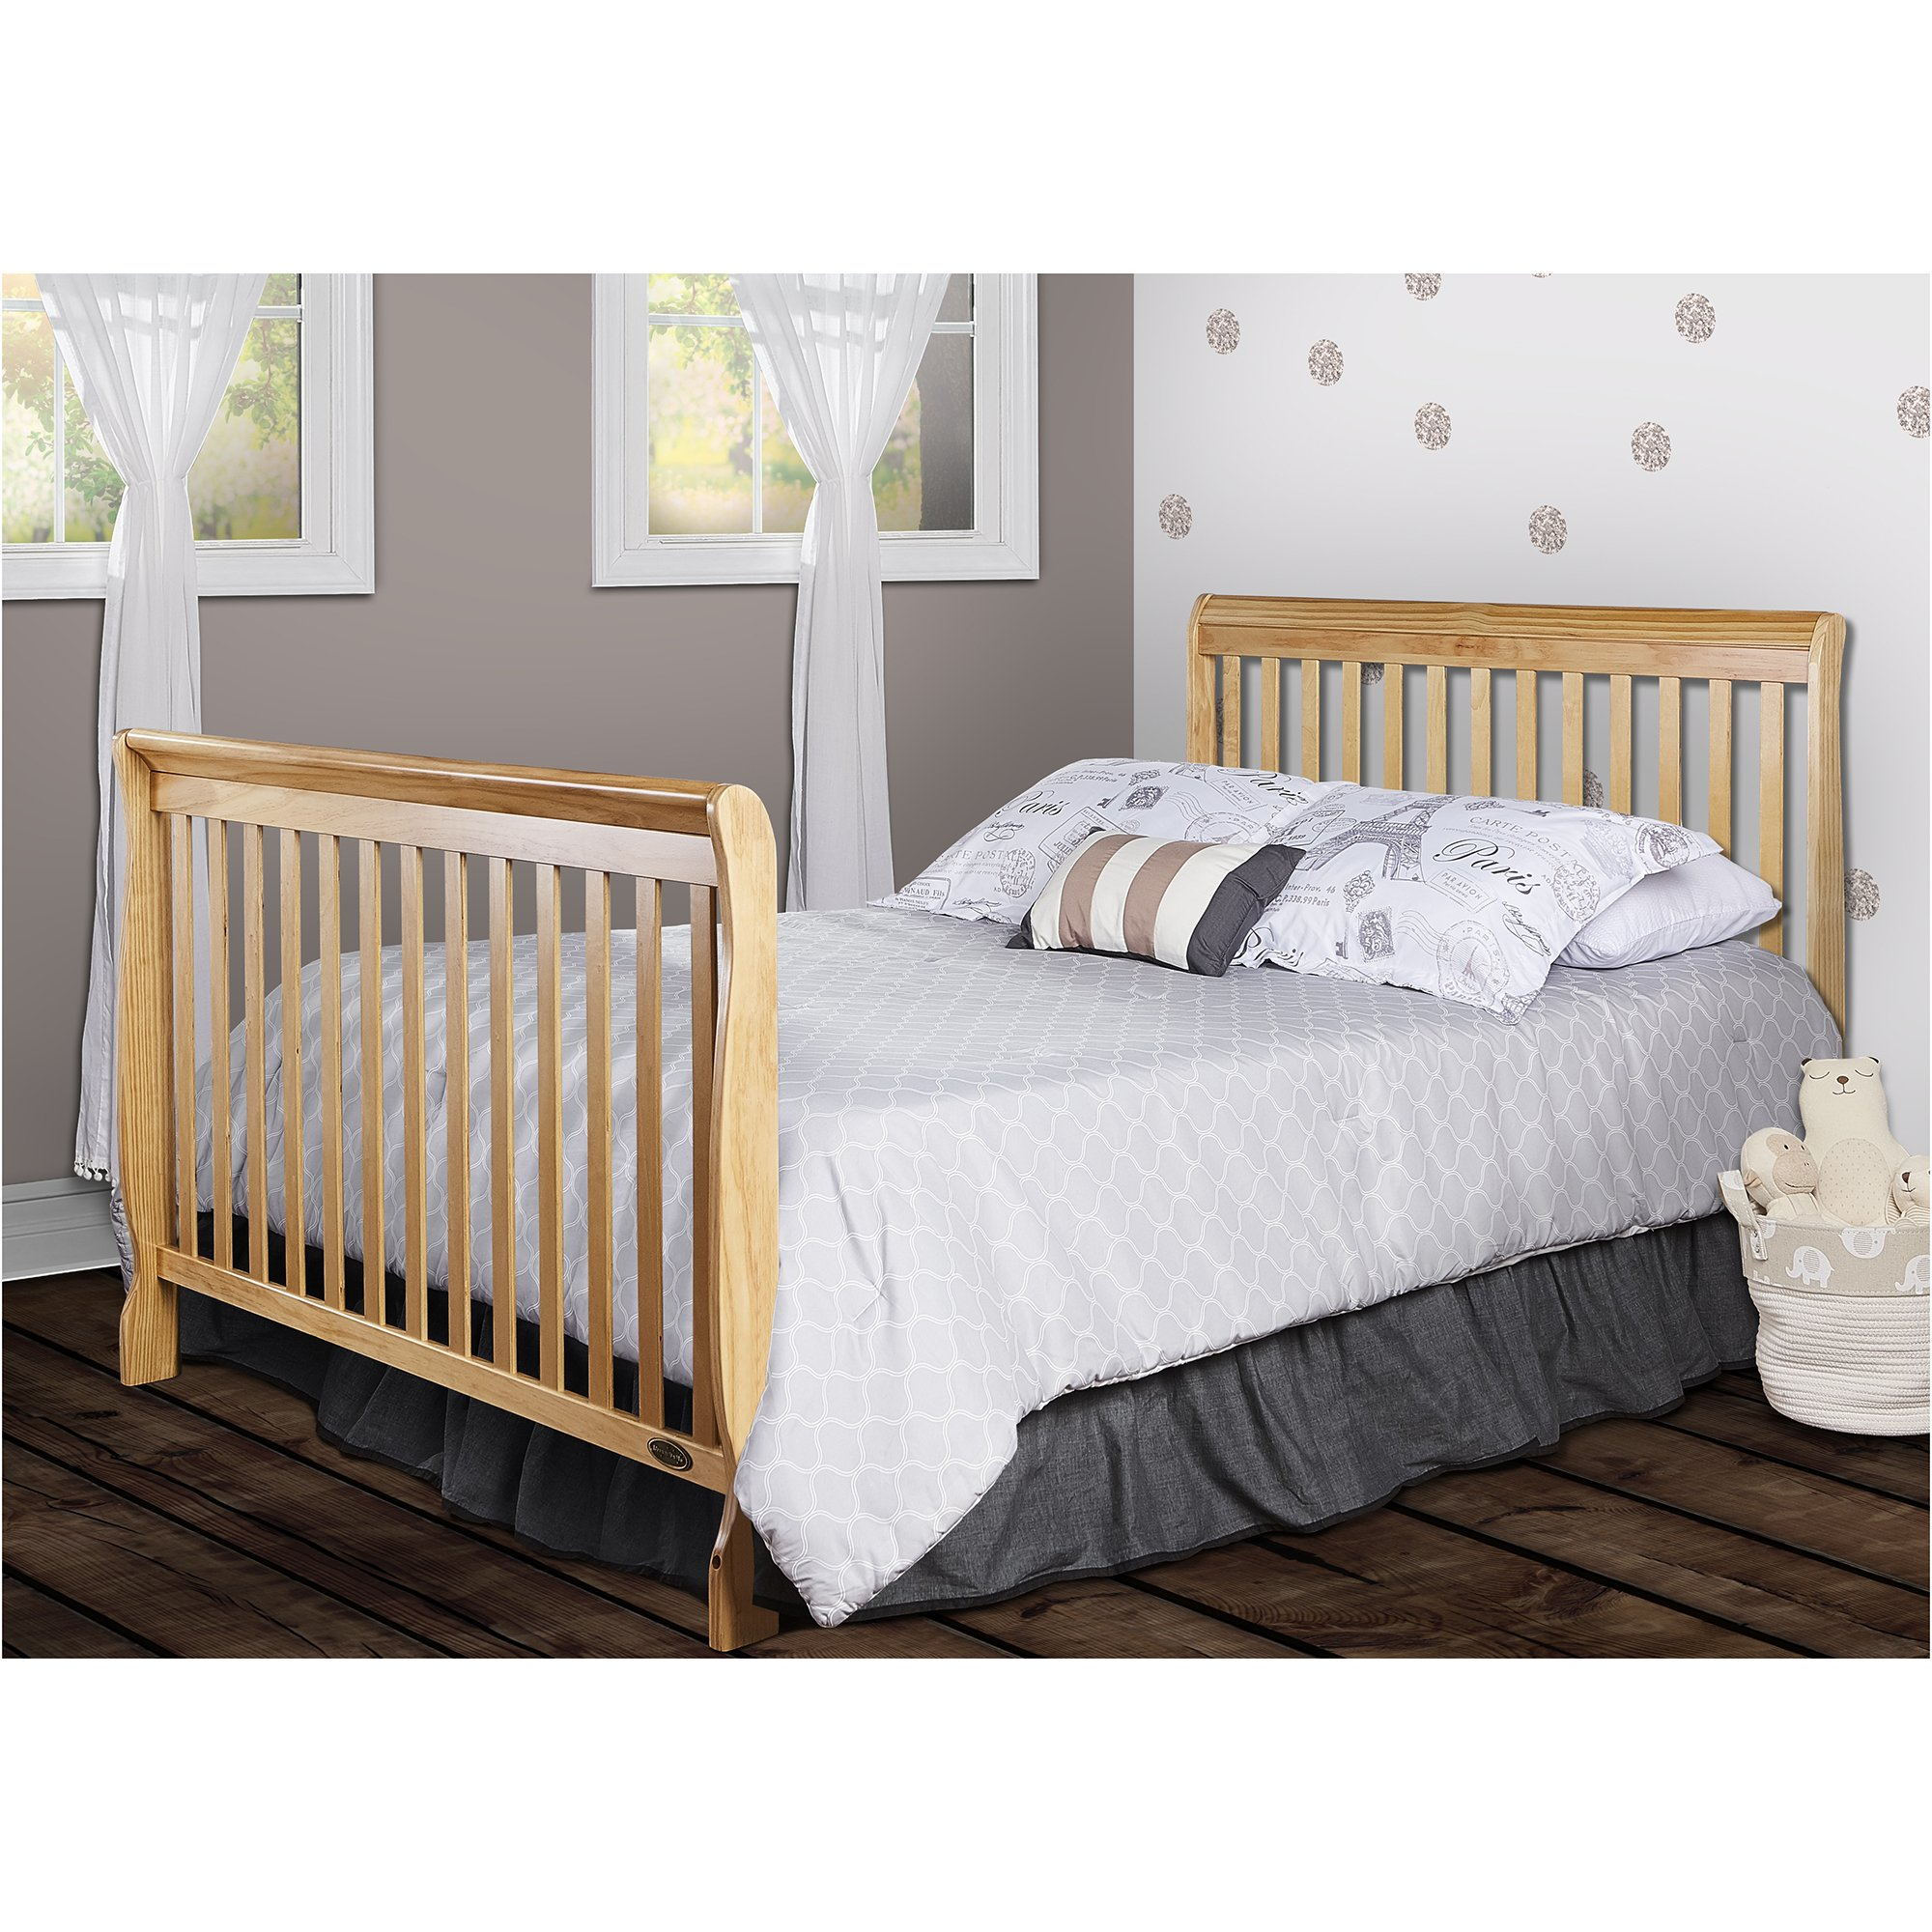 Dream On Me Ashton 5 in 1 Convertible Crib, Natural by Dream On Me (Image #8)